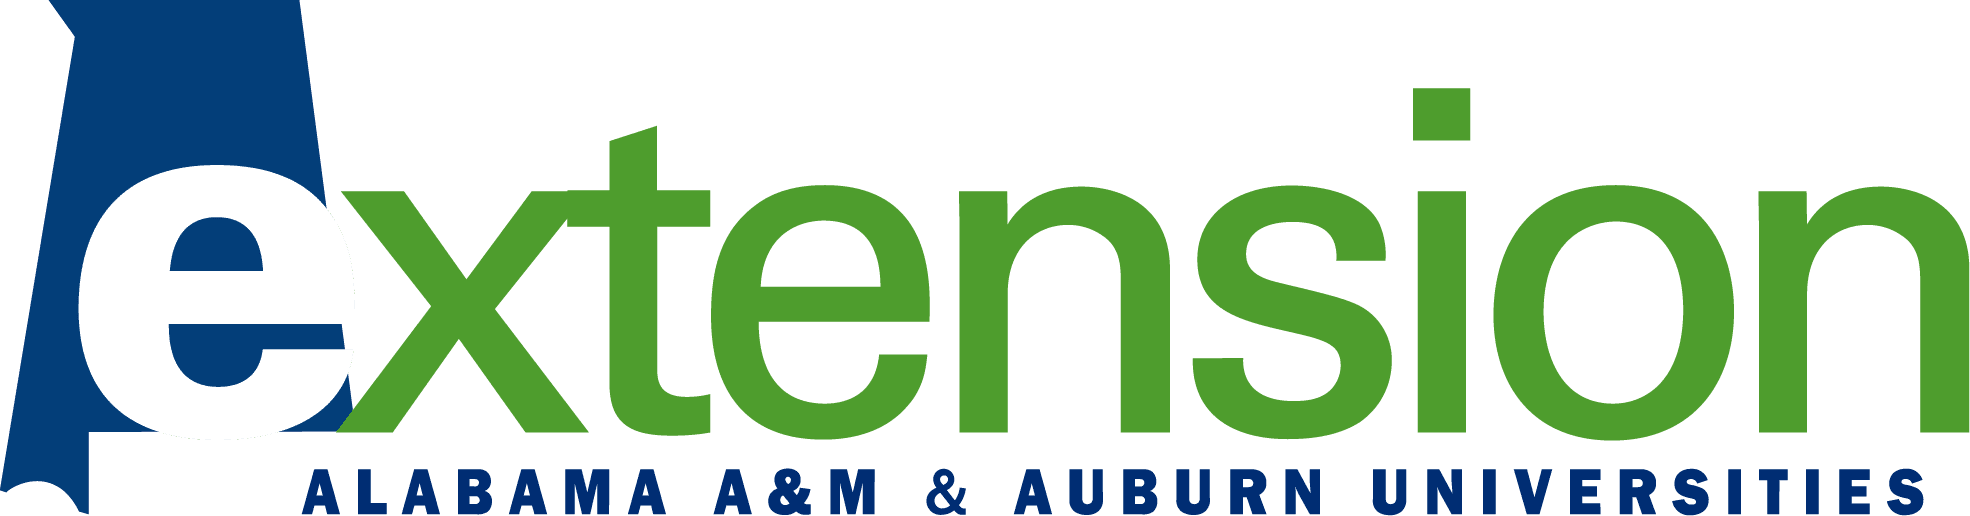 News - Alabama Cooperative Extension System